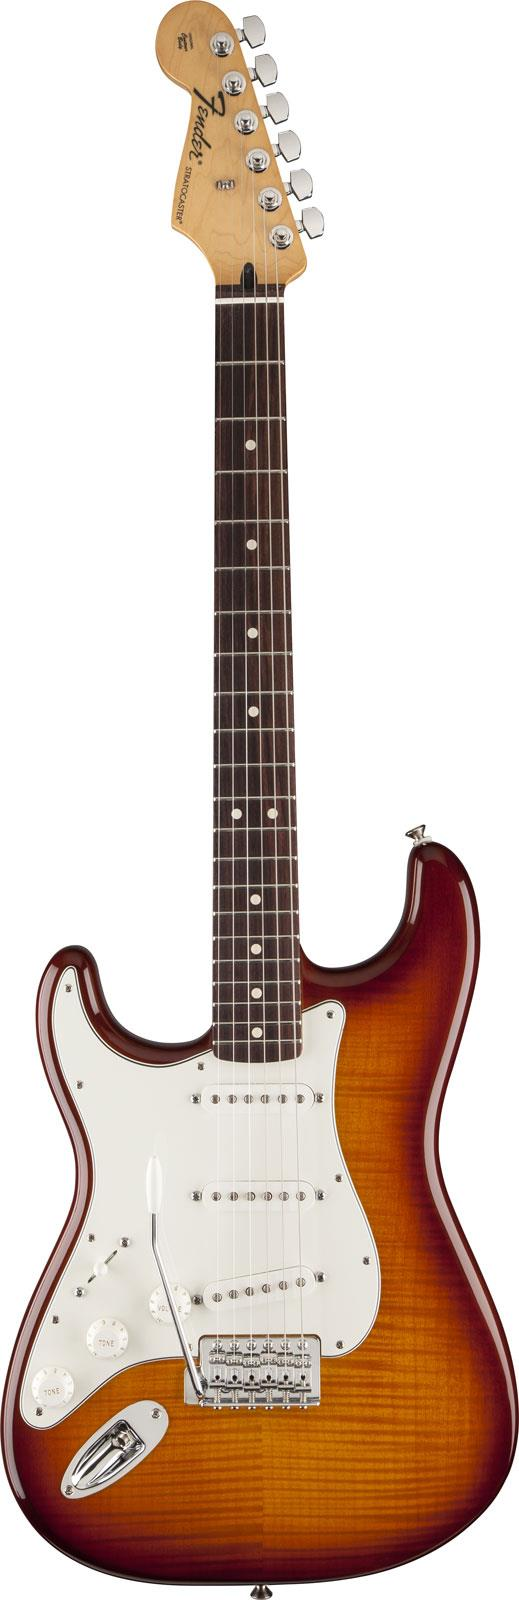 fender standard stratocaster lh plus top rw tobacco sunburst keymusic. Black Bedroom Furniture Sets. Home Design Ideas